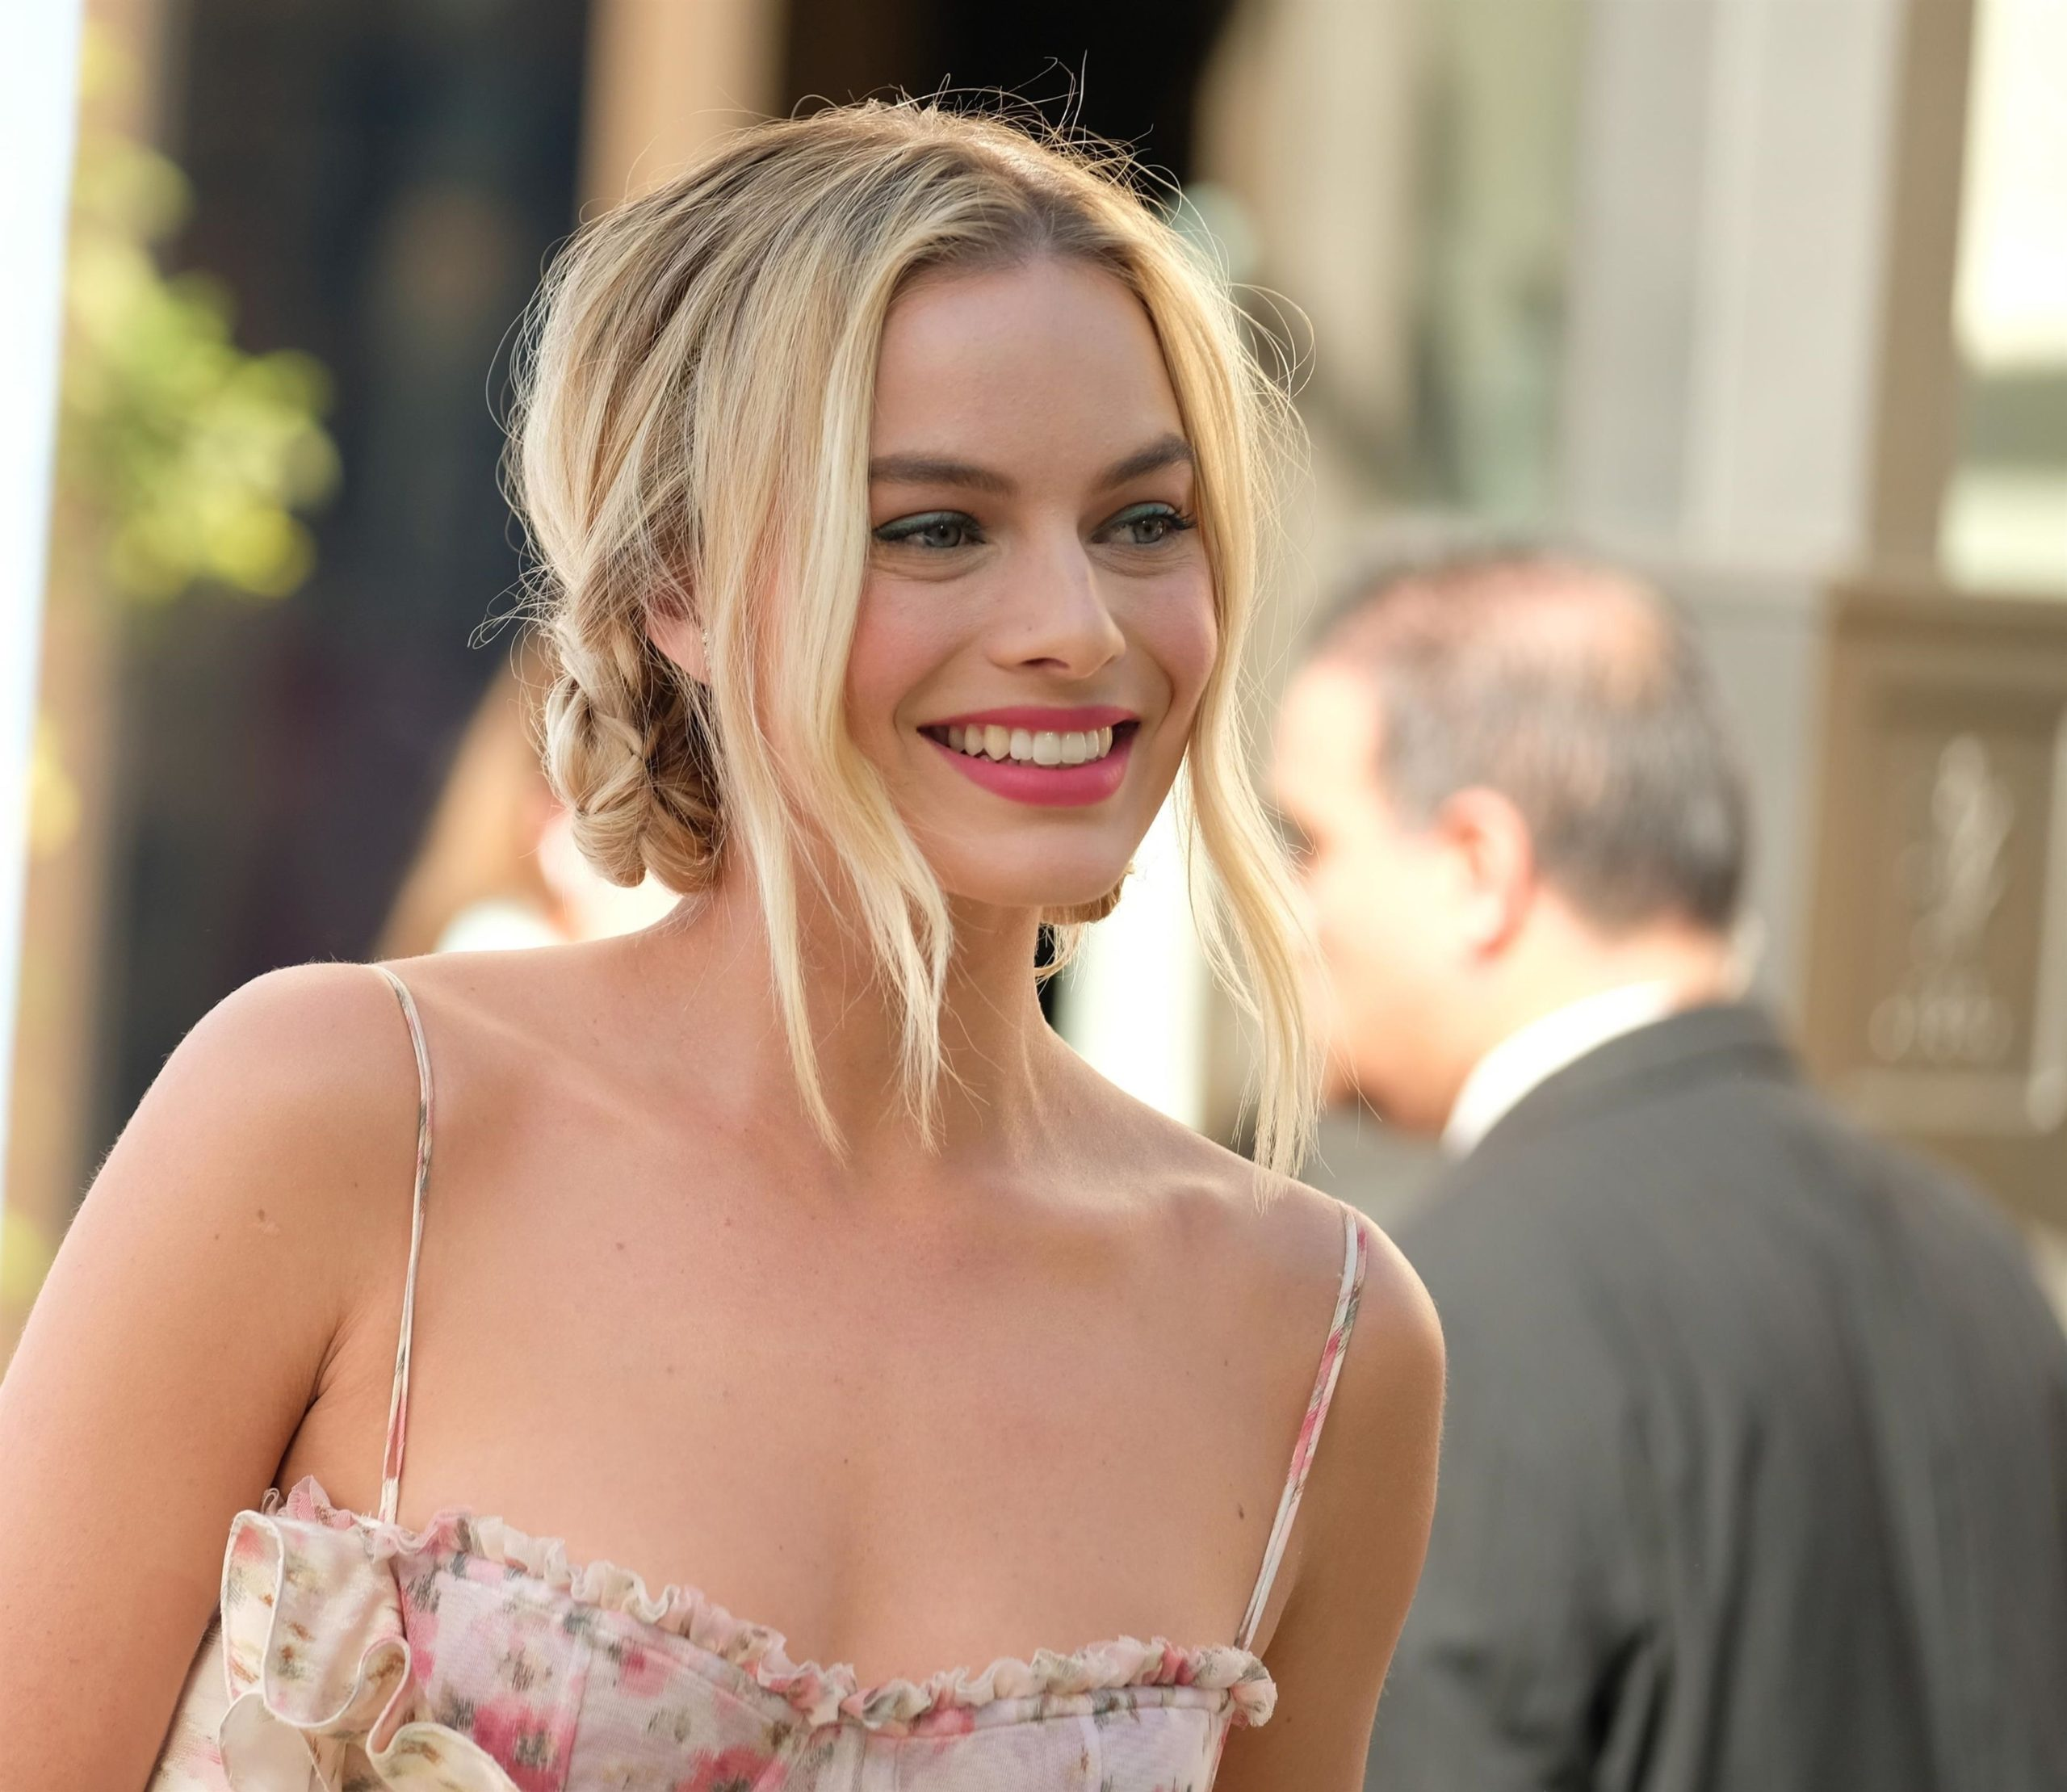 Margot Robbie Hot Smile scaled - Margot Robbie Net Worth, Pics, Wallpapers, Career and Biography